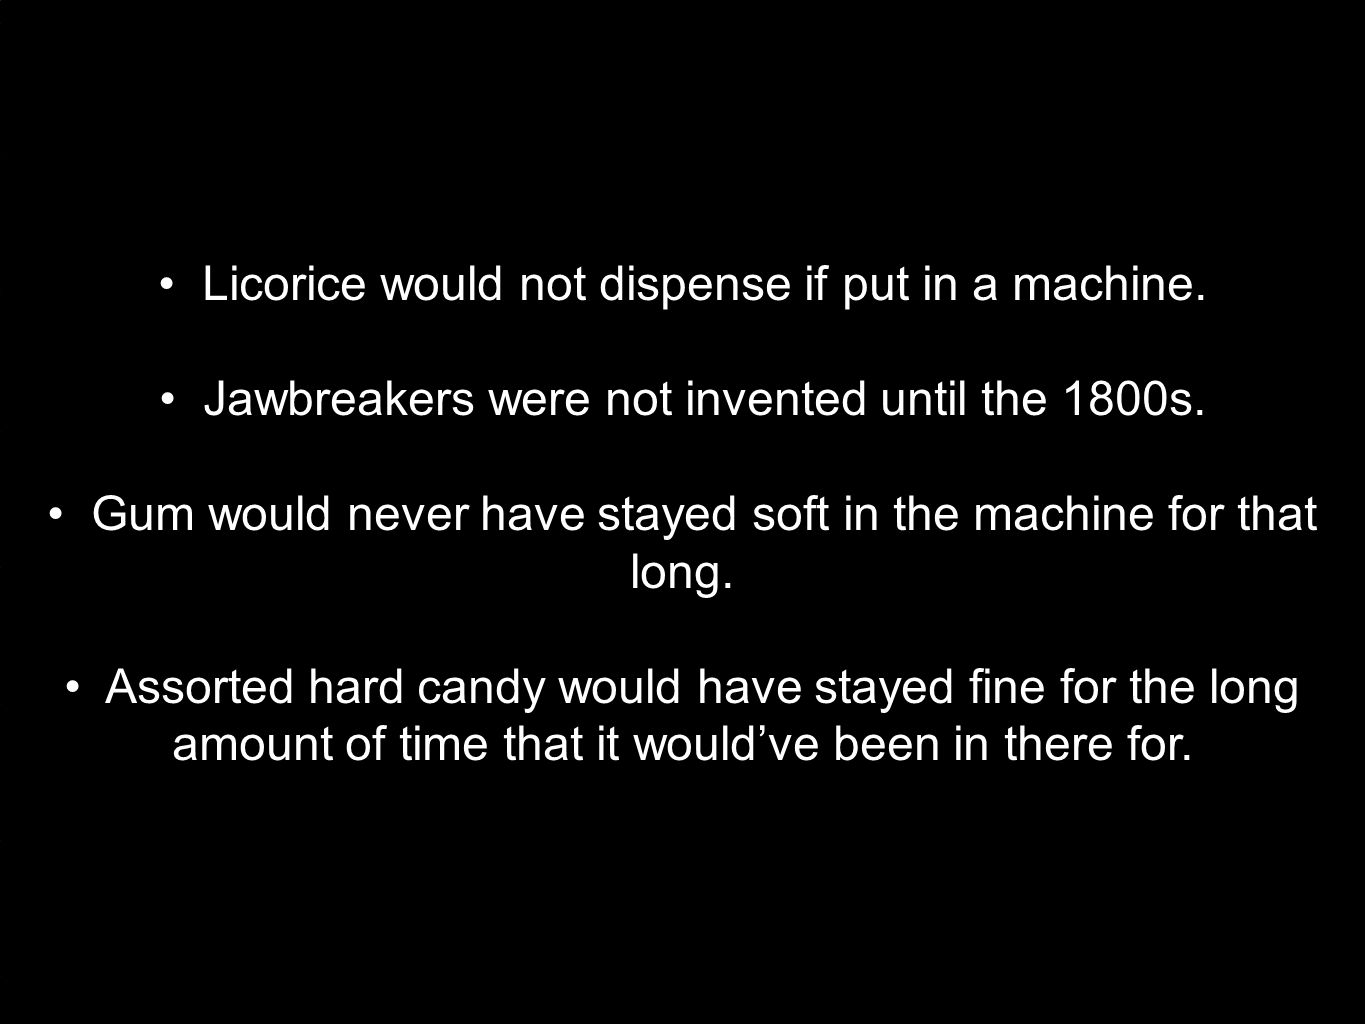 Licorice would not dispense if put in a machine. Jawbreakers were not invented until the 1800s.